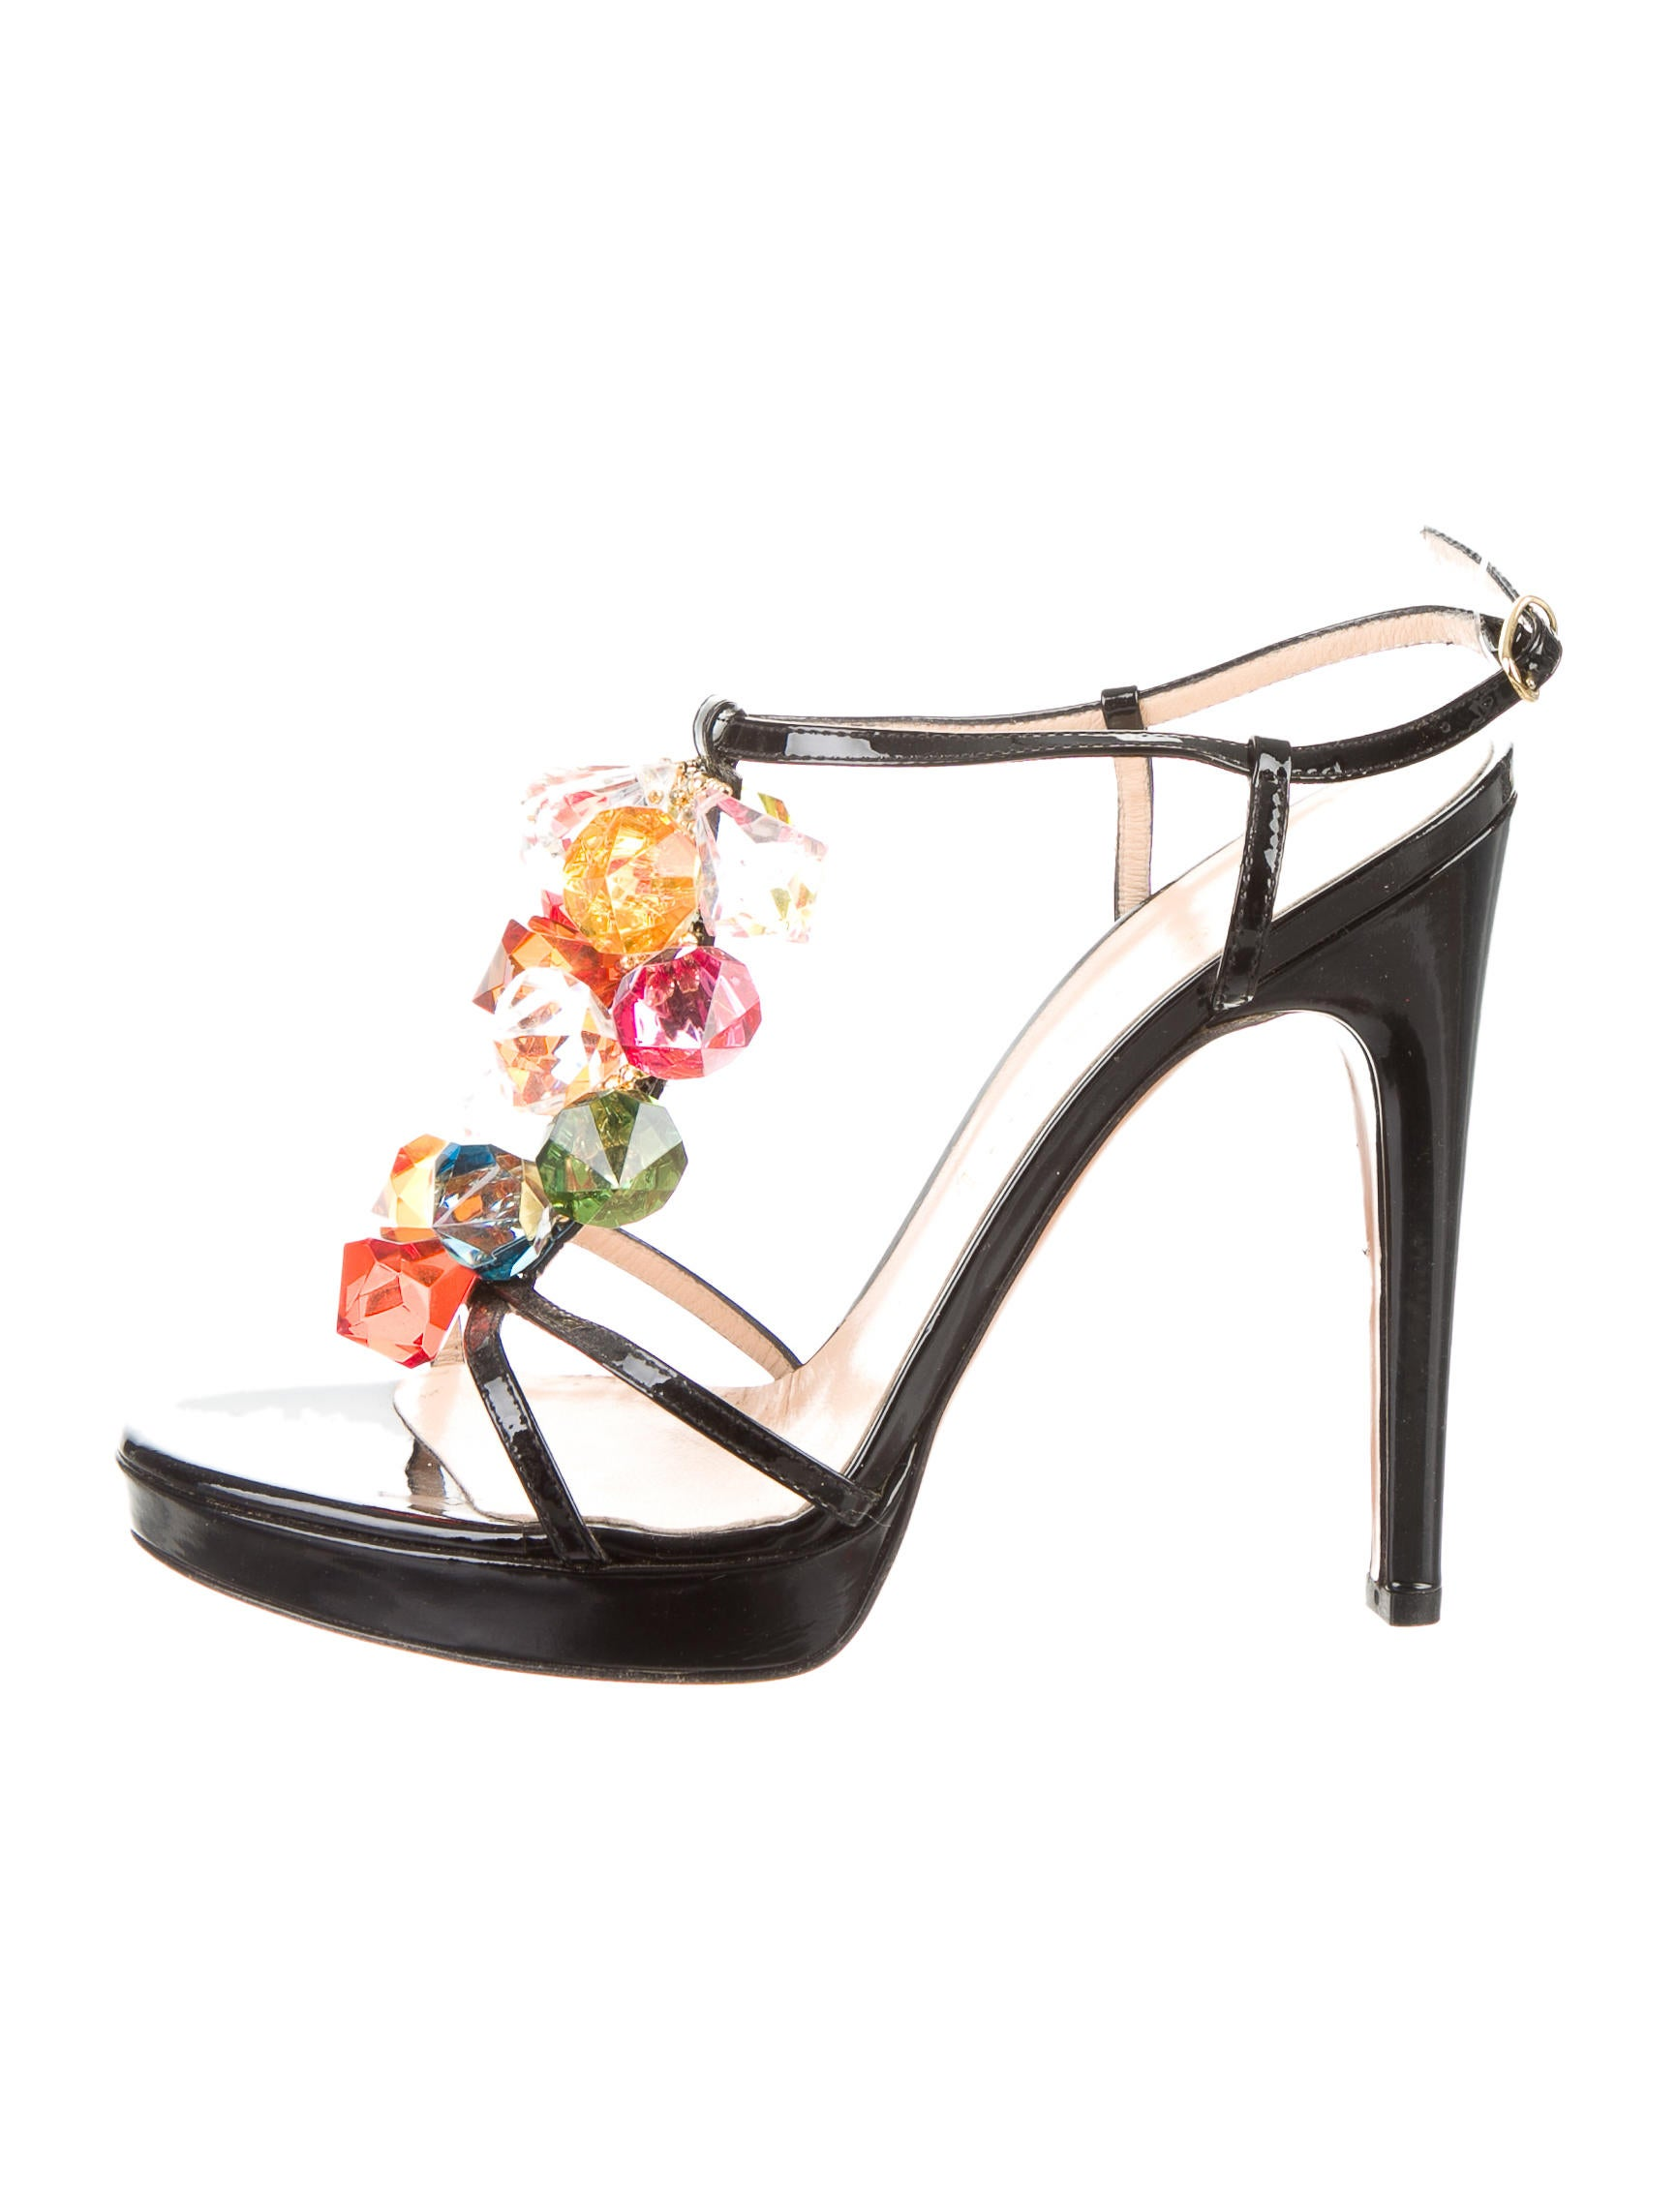 Casadei Embellished Patent Leather Sandals cheap recommend vNfleMk4A